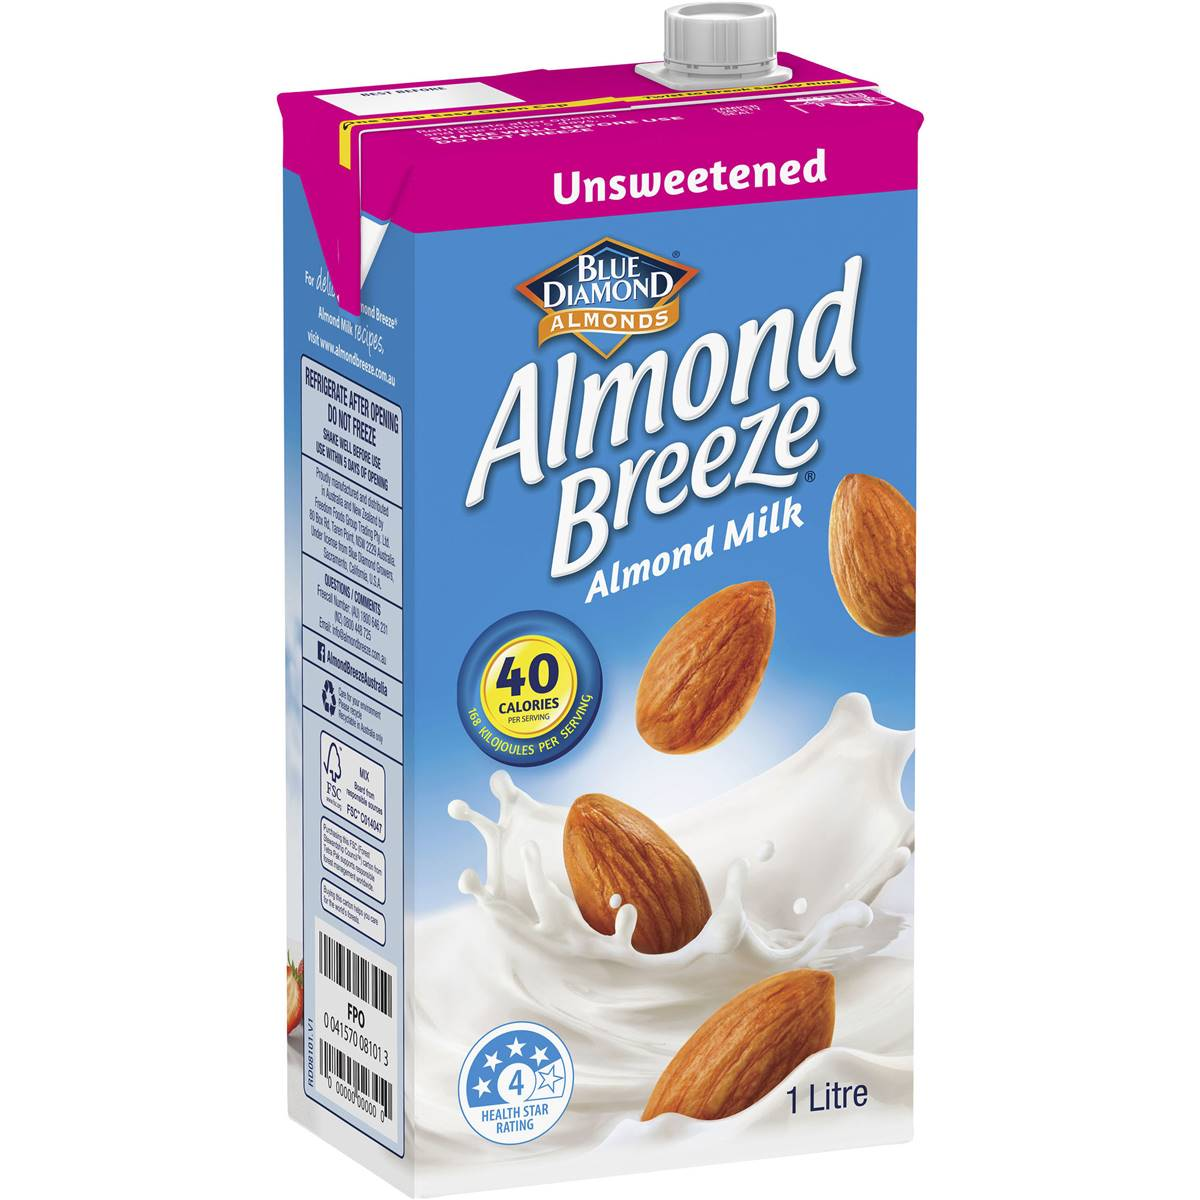 I love almond breeze in my ice coffee. I especially love that I don't have to carry them home a few cartons at a time thanks to Jet I can have 10 of them delivered to my door.